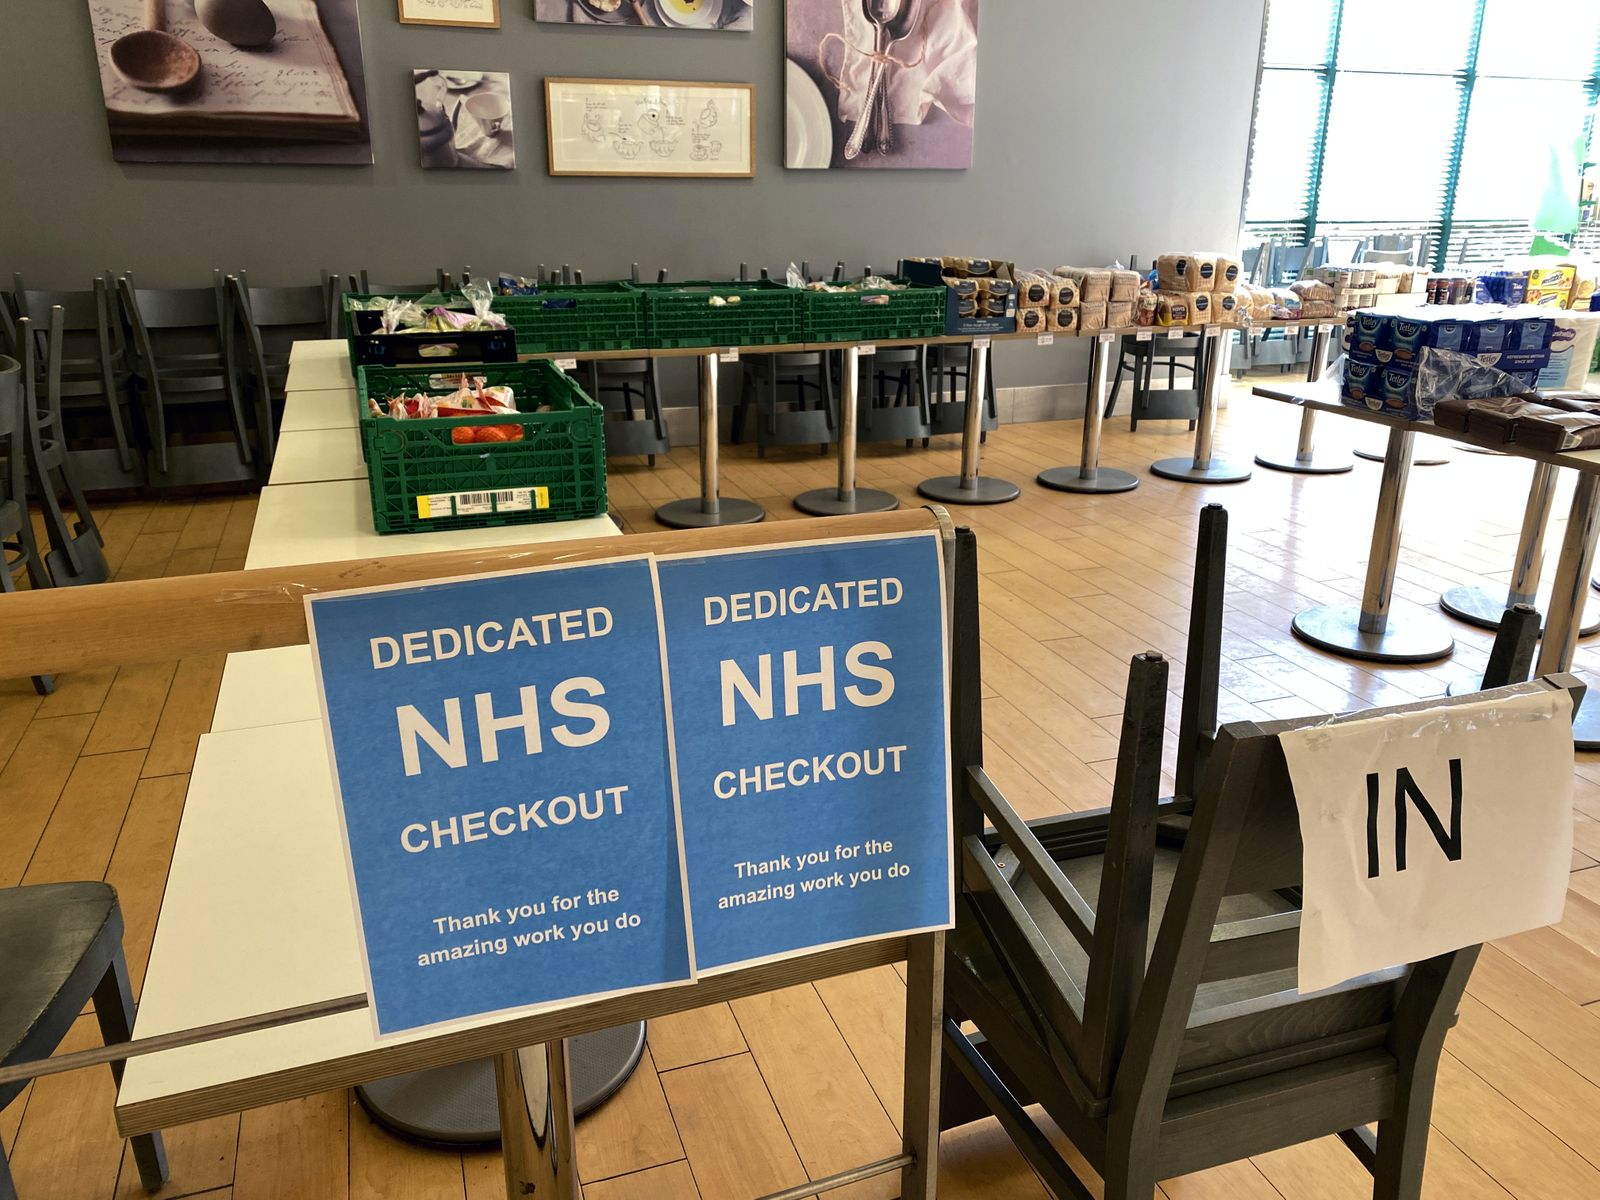 A dedicated NHS checkout is seen at a Waitrose supermarket in Berkhamsted